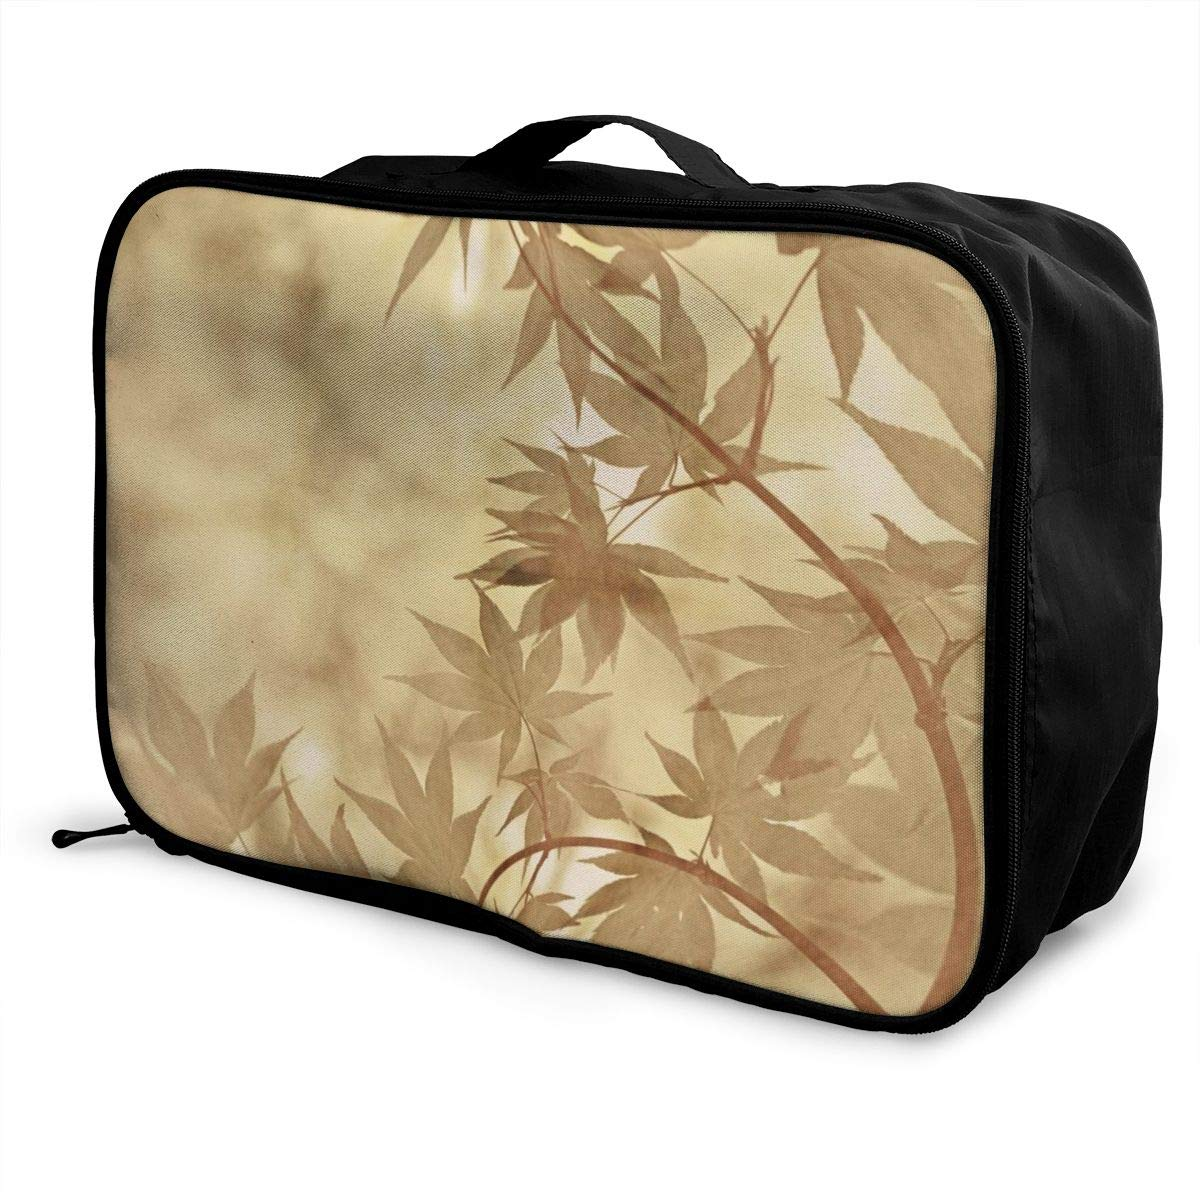 Bamboo Maple Leaf Travel Lightweight Waterproof Foldable Storage Carry Luggage Large Capacity Portable Luggage Bag Duffel Bag